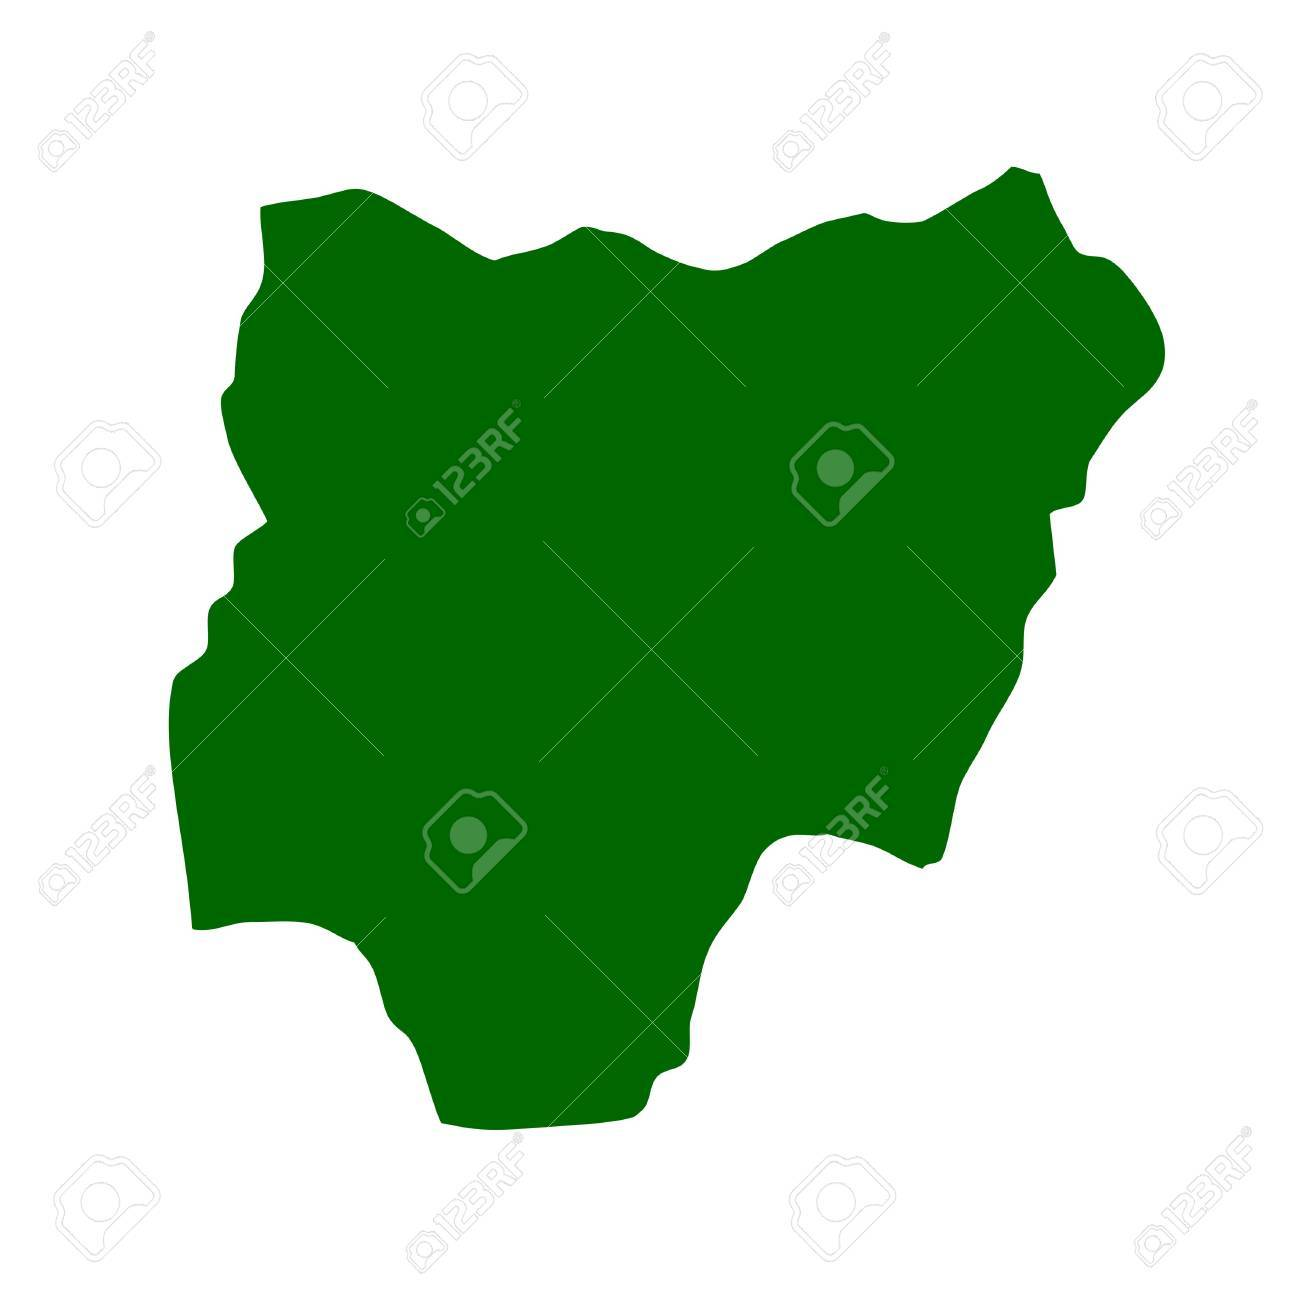 Outline map of Nigeria Stock Photo - 5800729